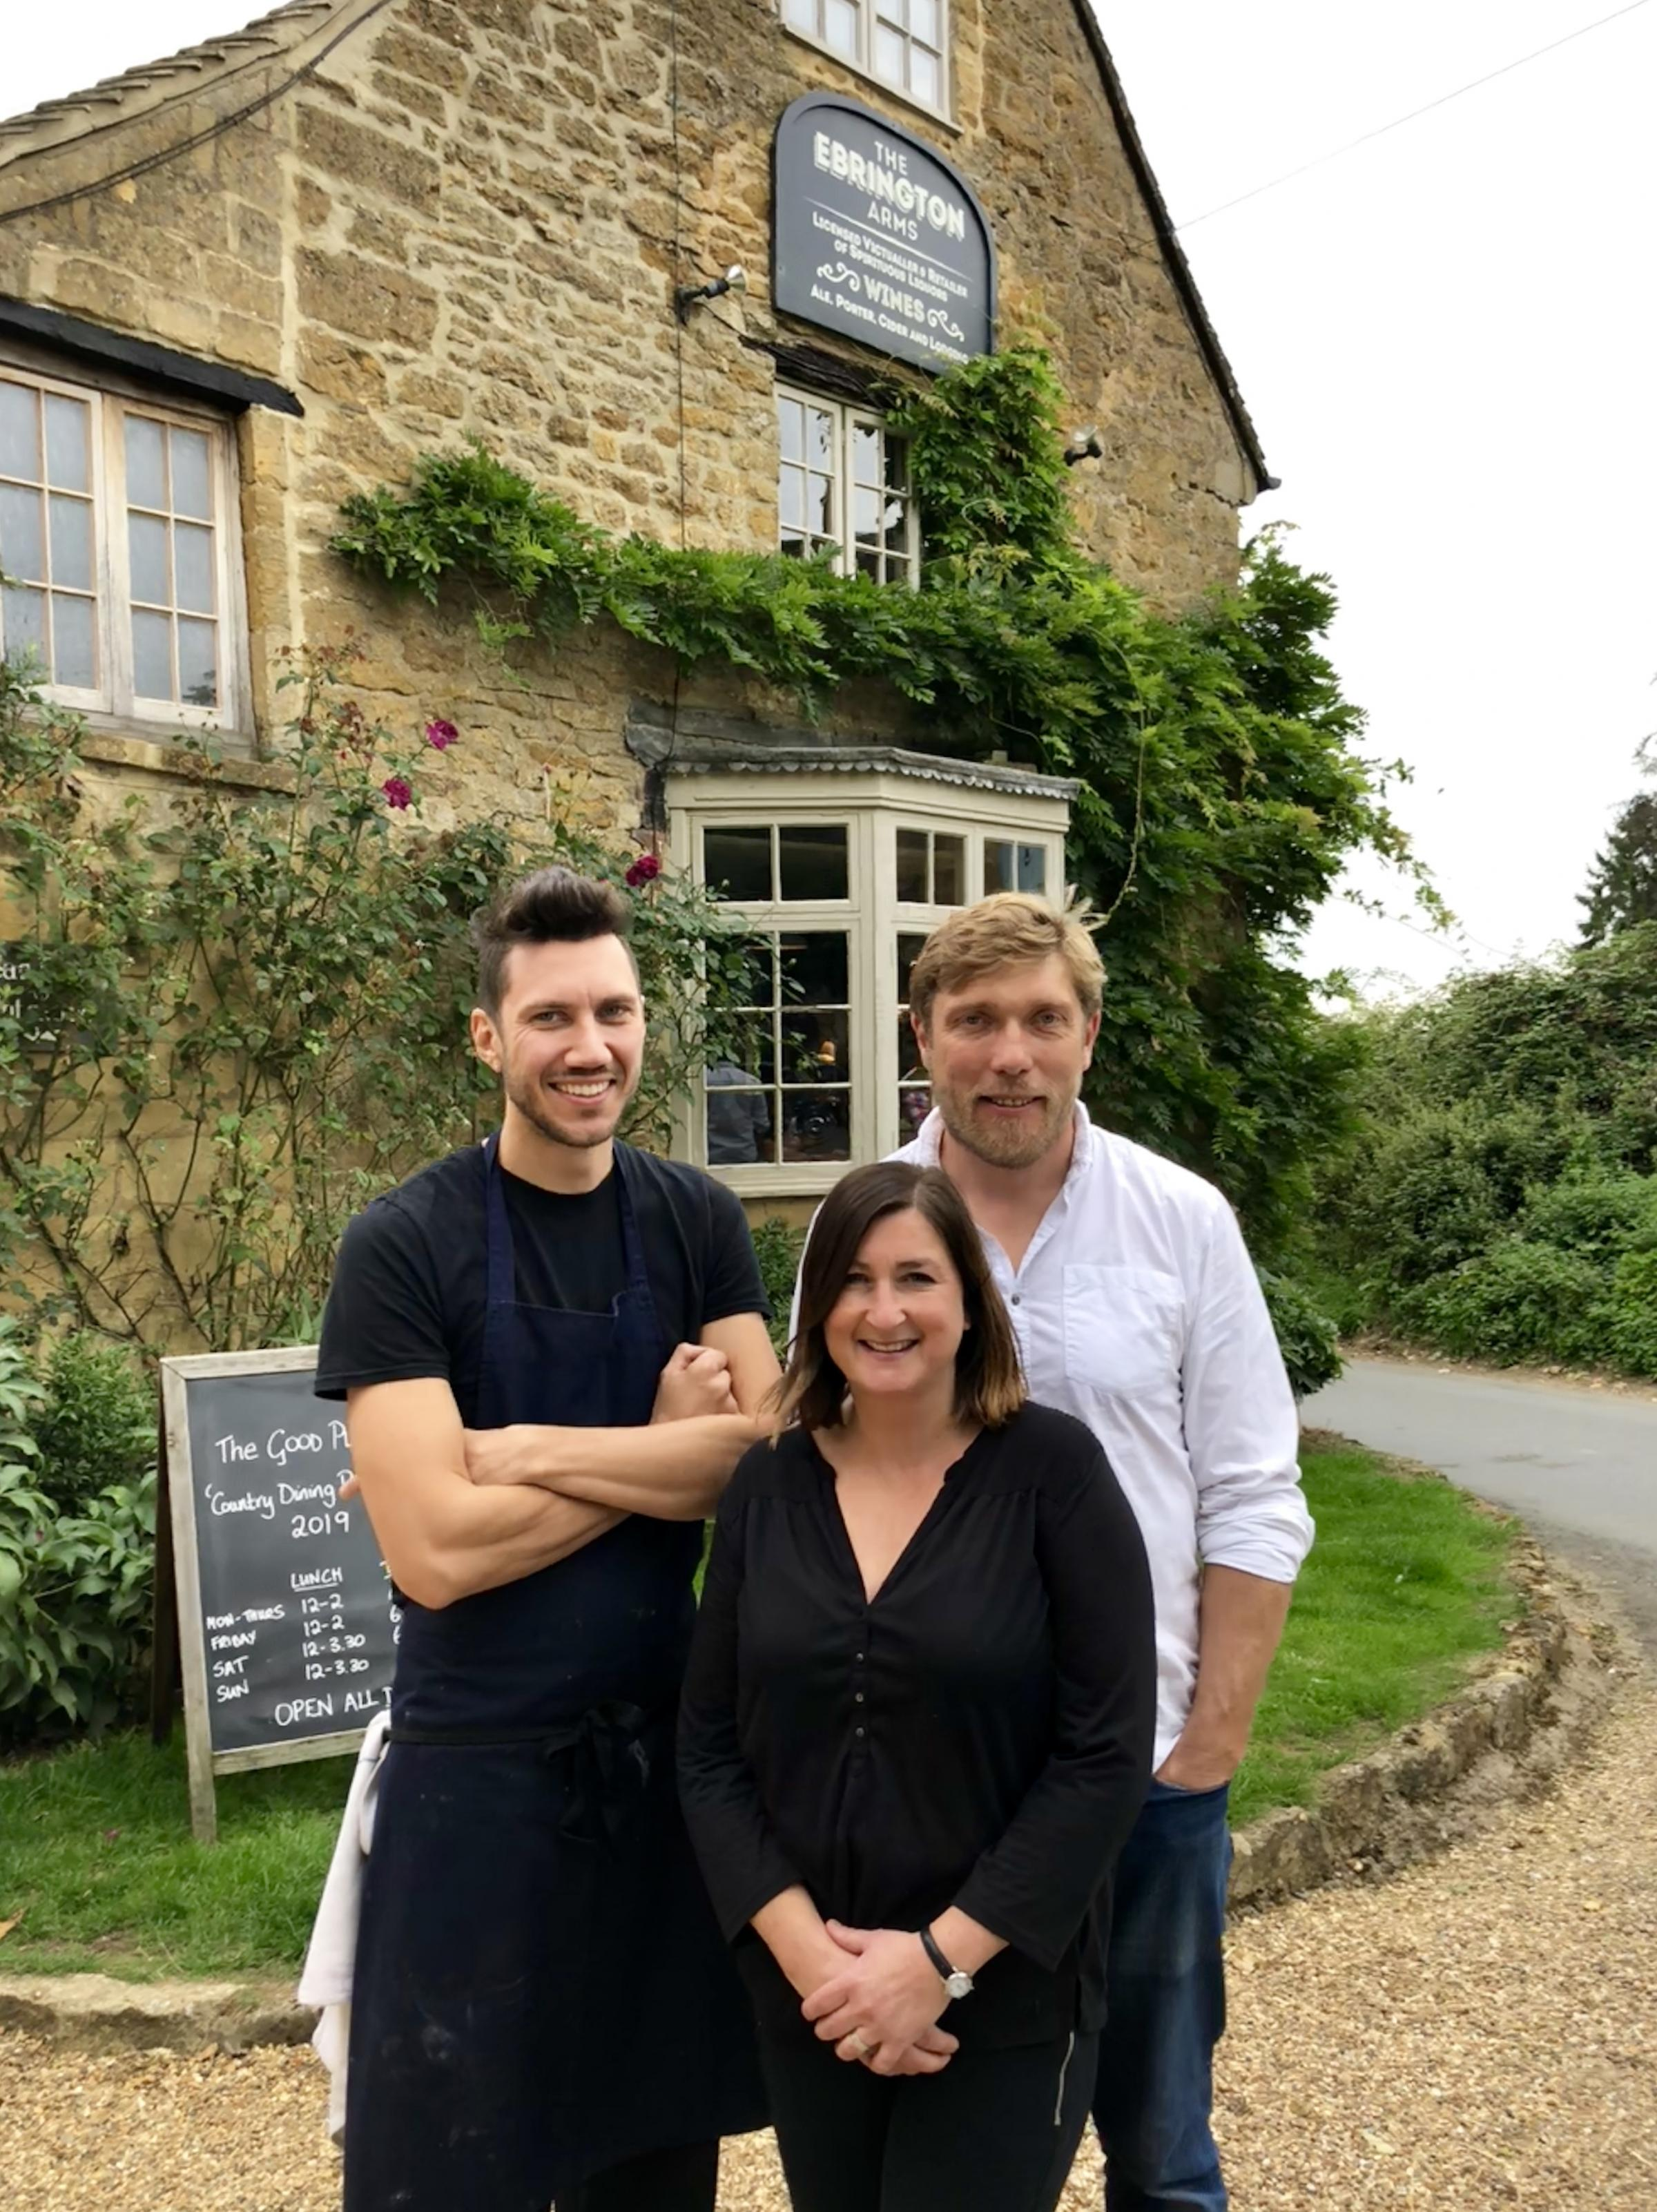 PROUD: The Erbrington Arms , a Cotswold pub wins pretigeous award